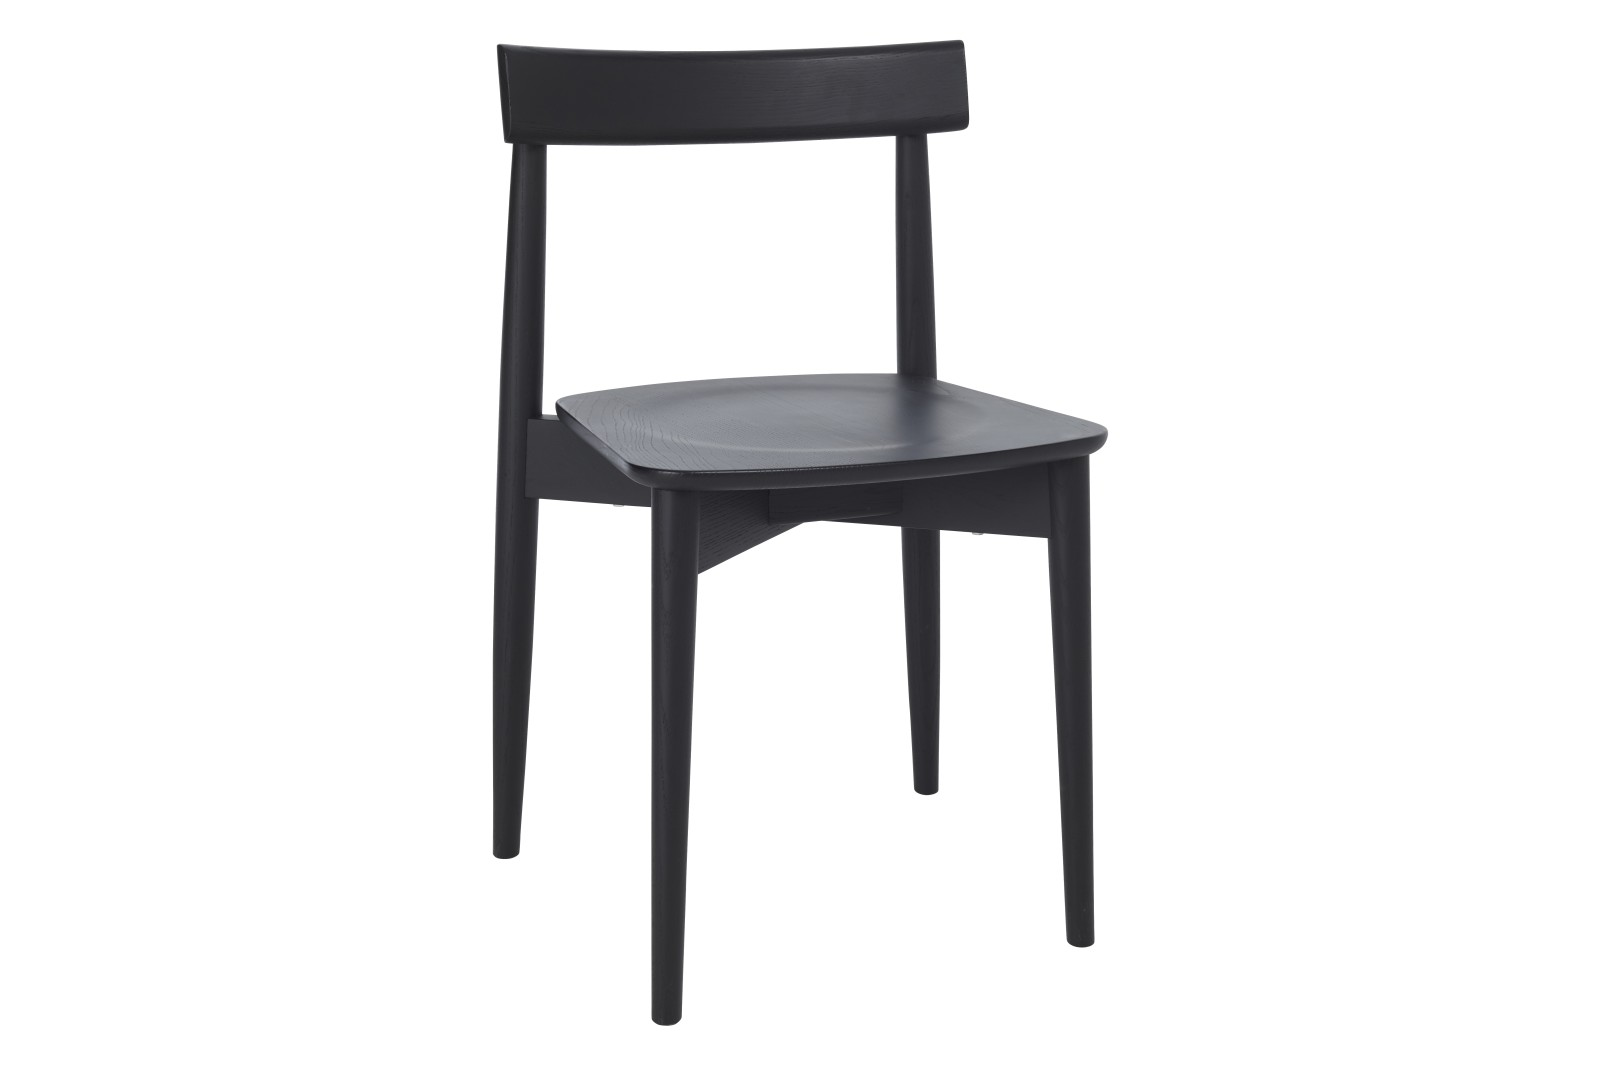 Lara Dining Chair Black - BK